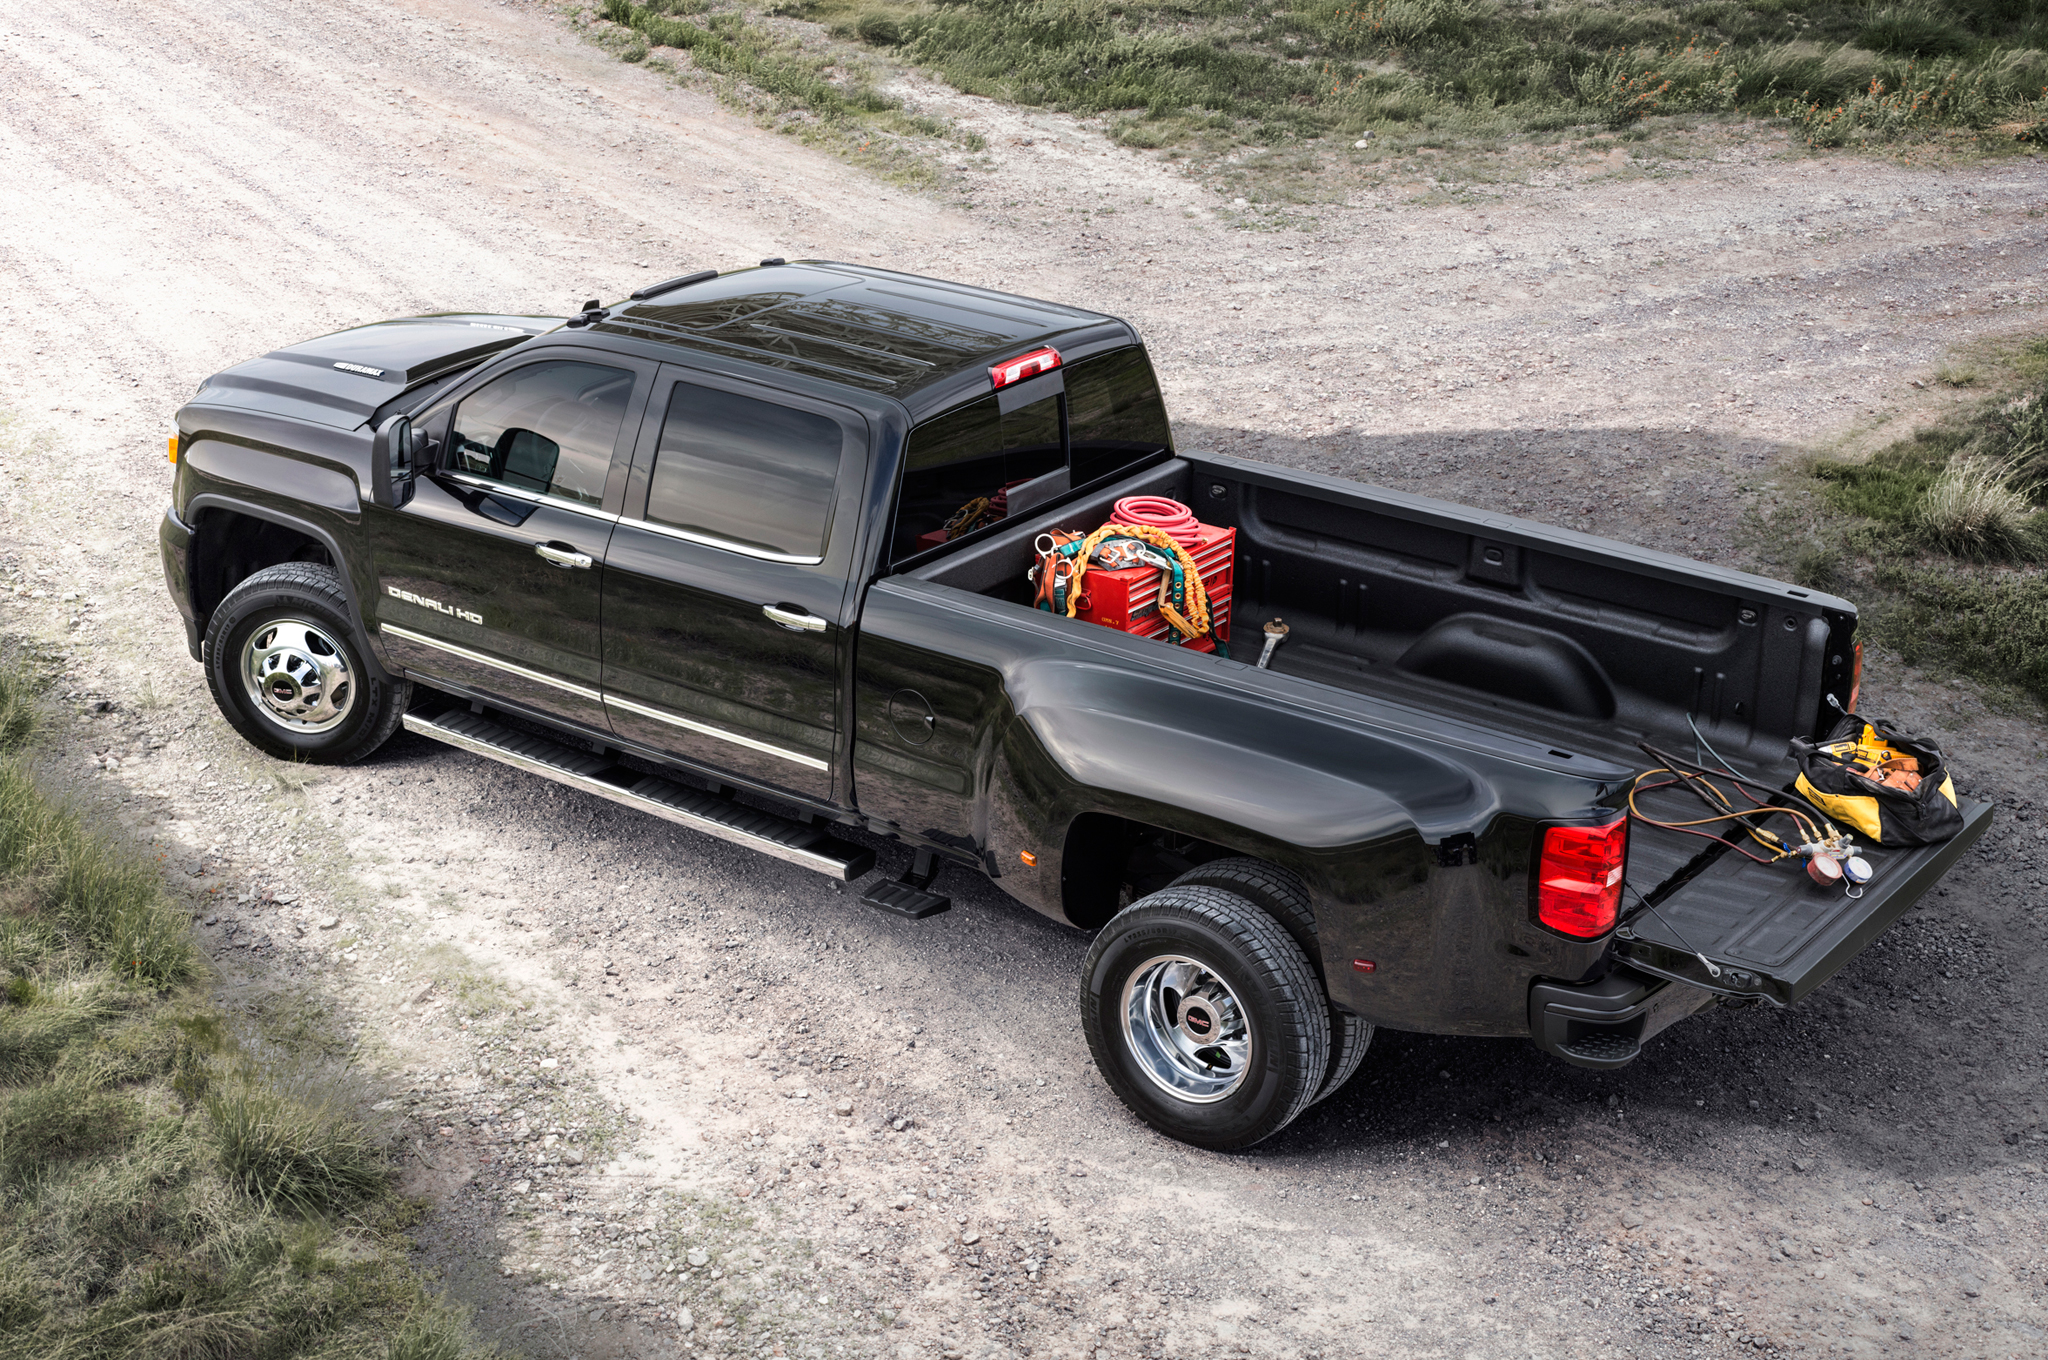 2015 Chevrolet Silverado Hd Cab (Photo 3 of 6)